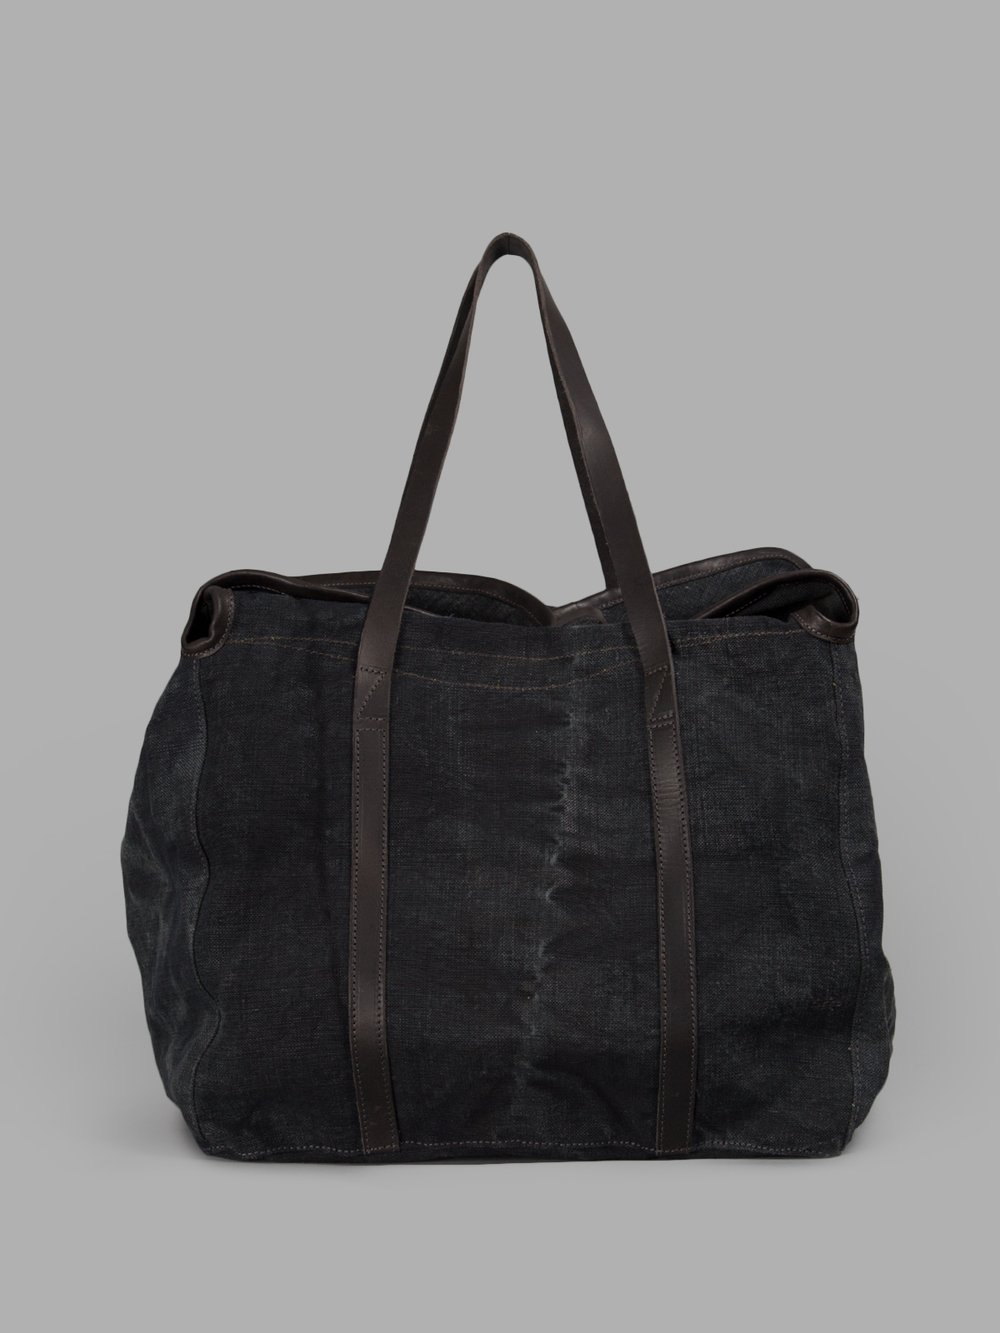 Image of DELLE COSE TRAVEL BAGS